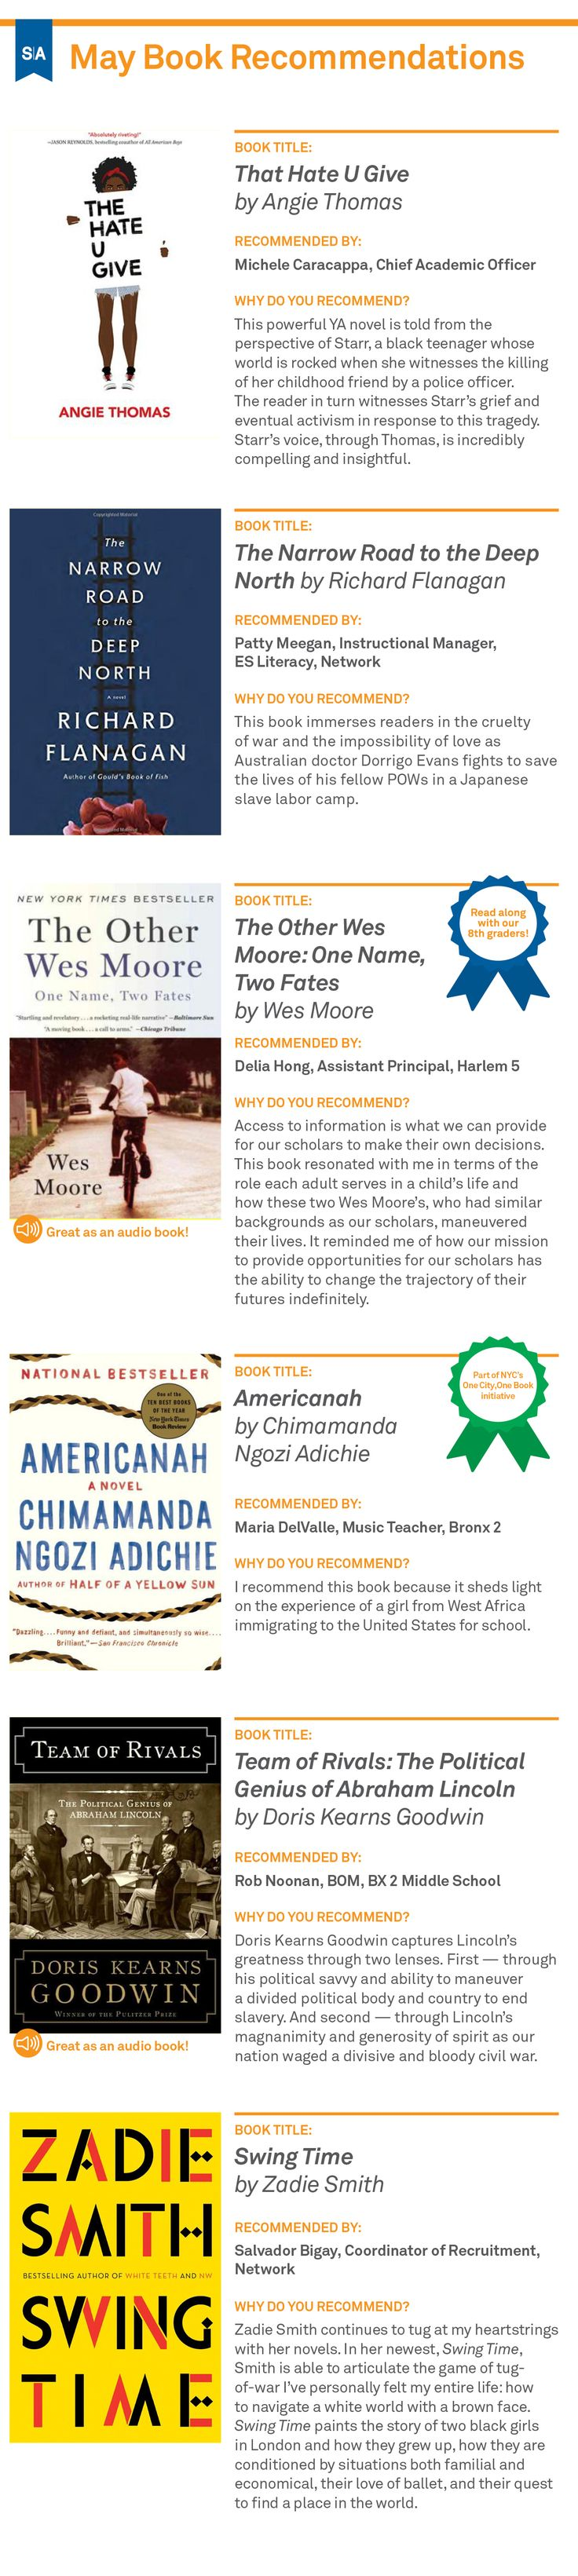 Our May Book Recommendations: brought to you by the teachers and staff of Success Academy Charter Schools.